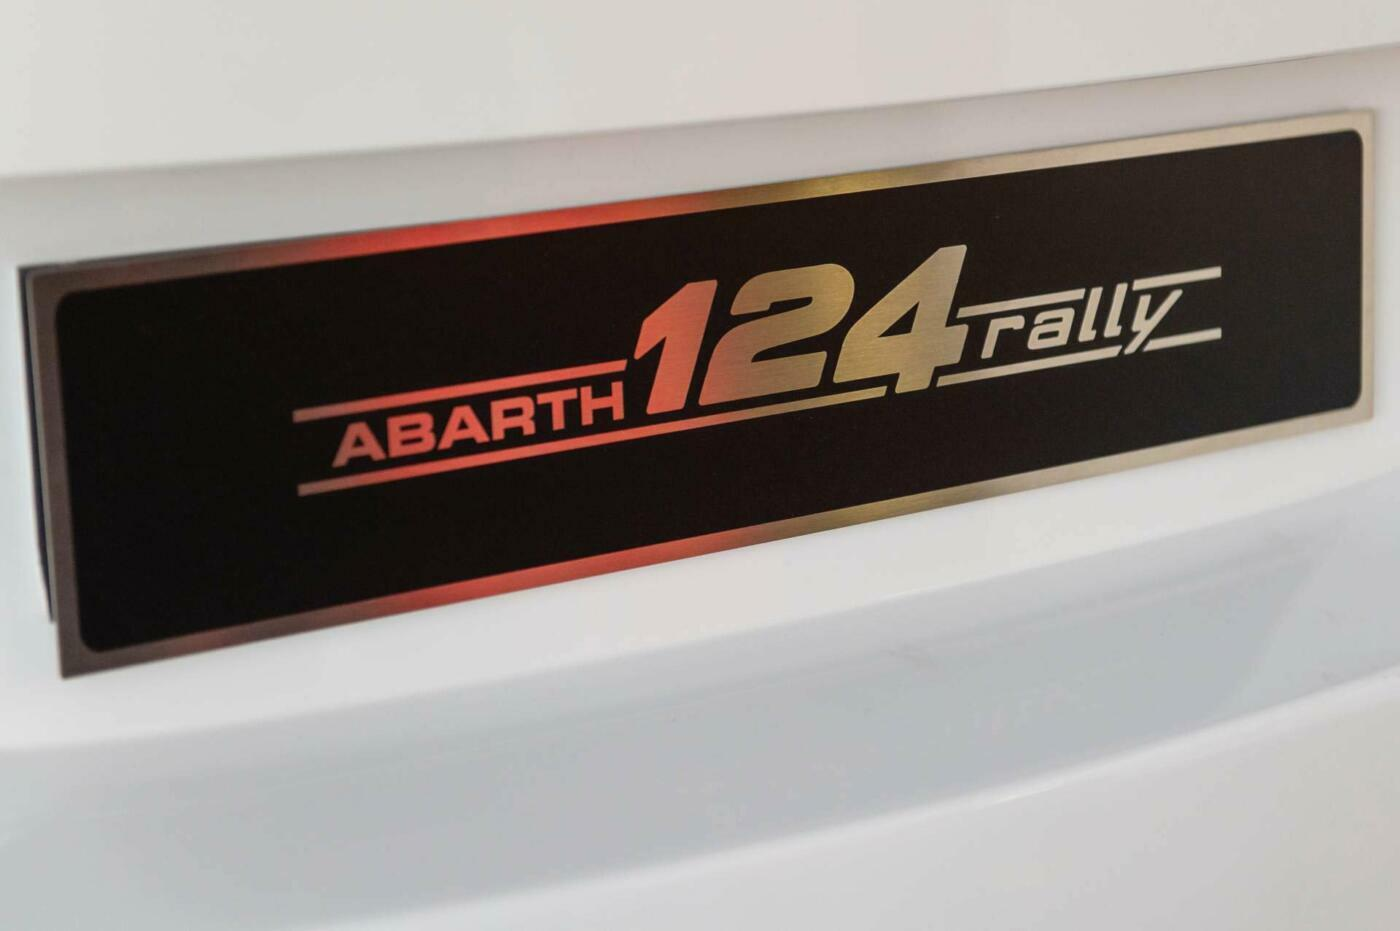 Abarth 124 Rally 2019